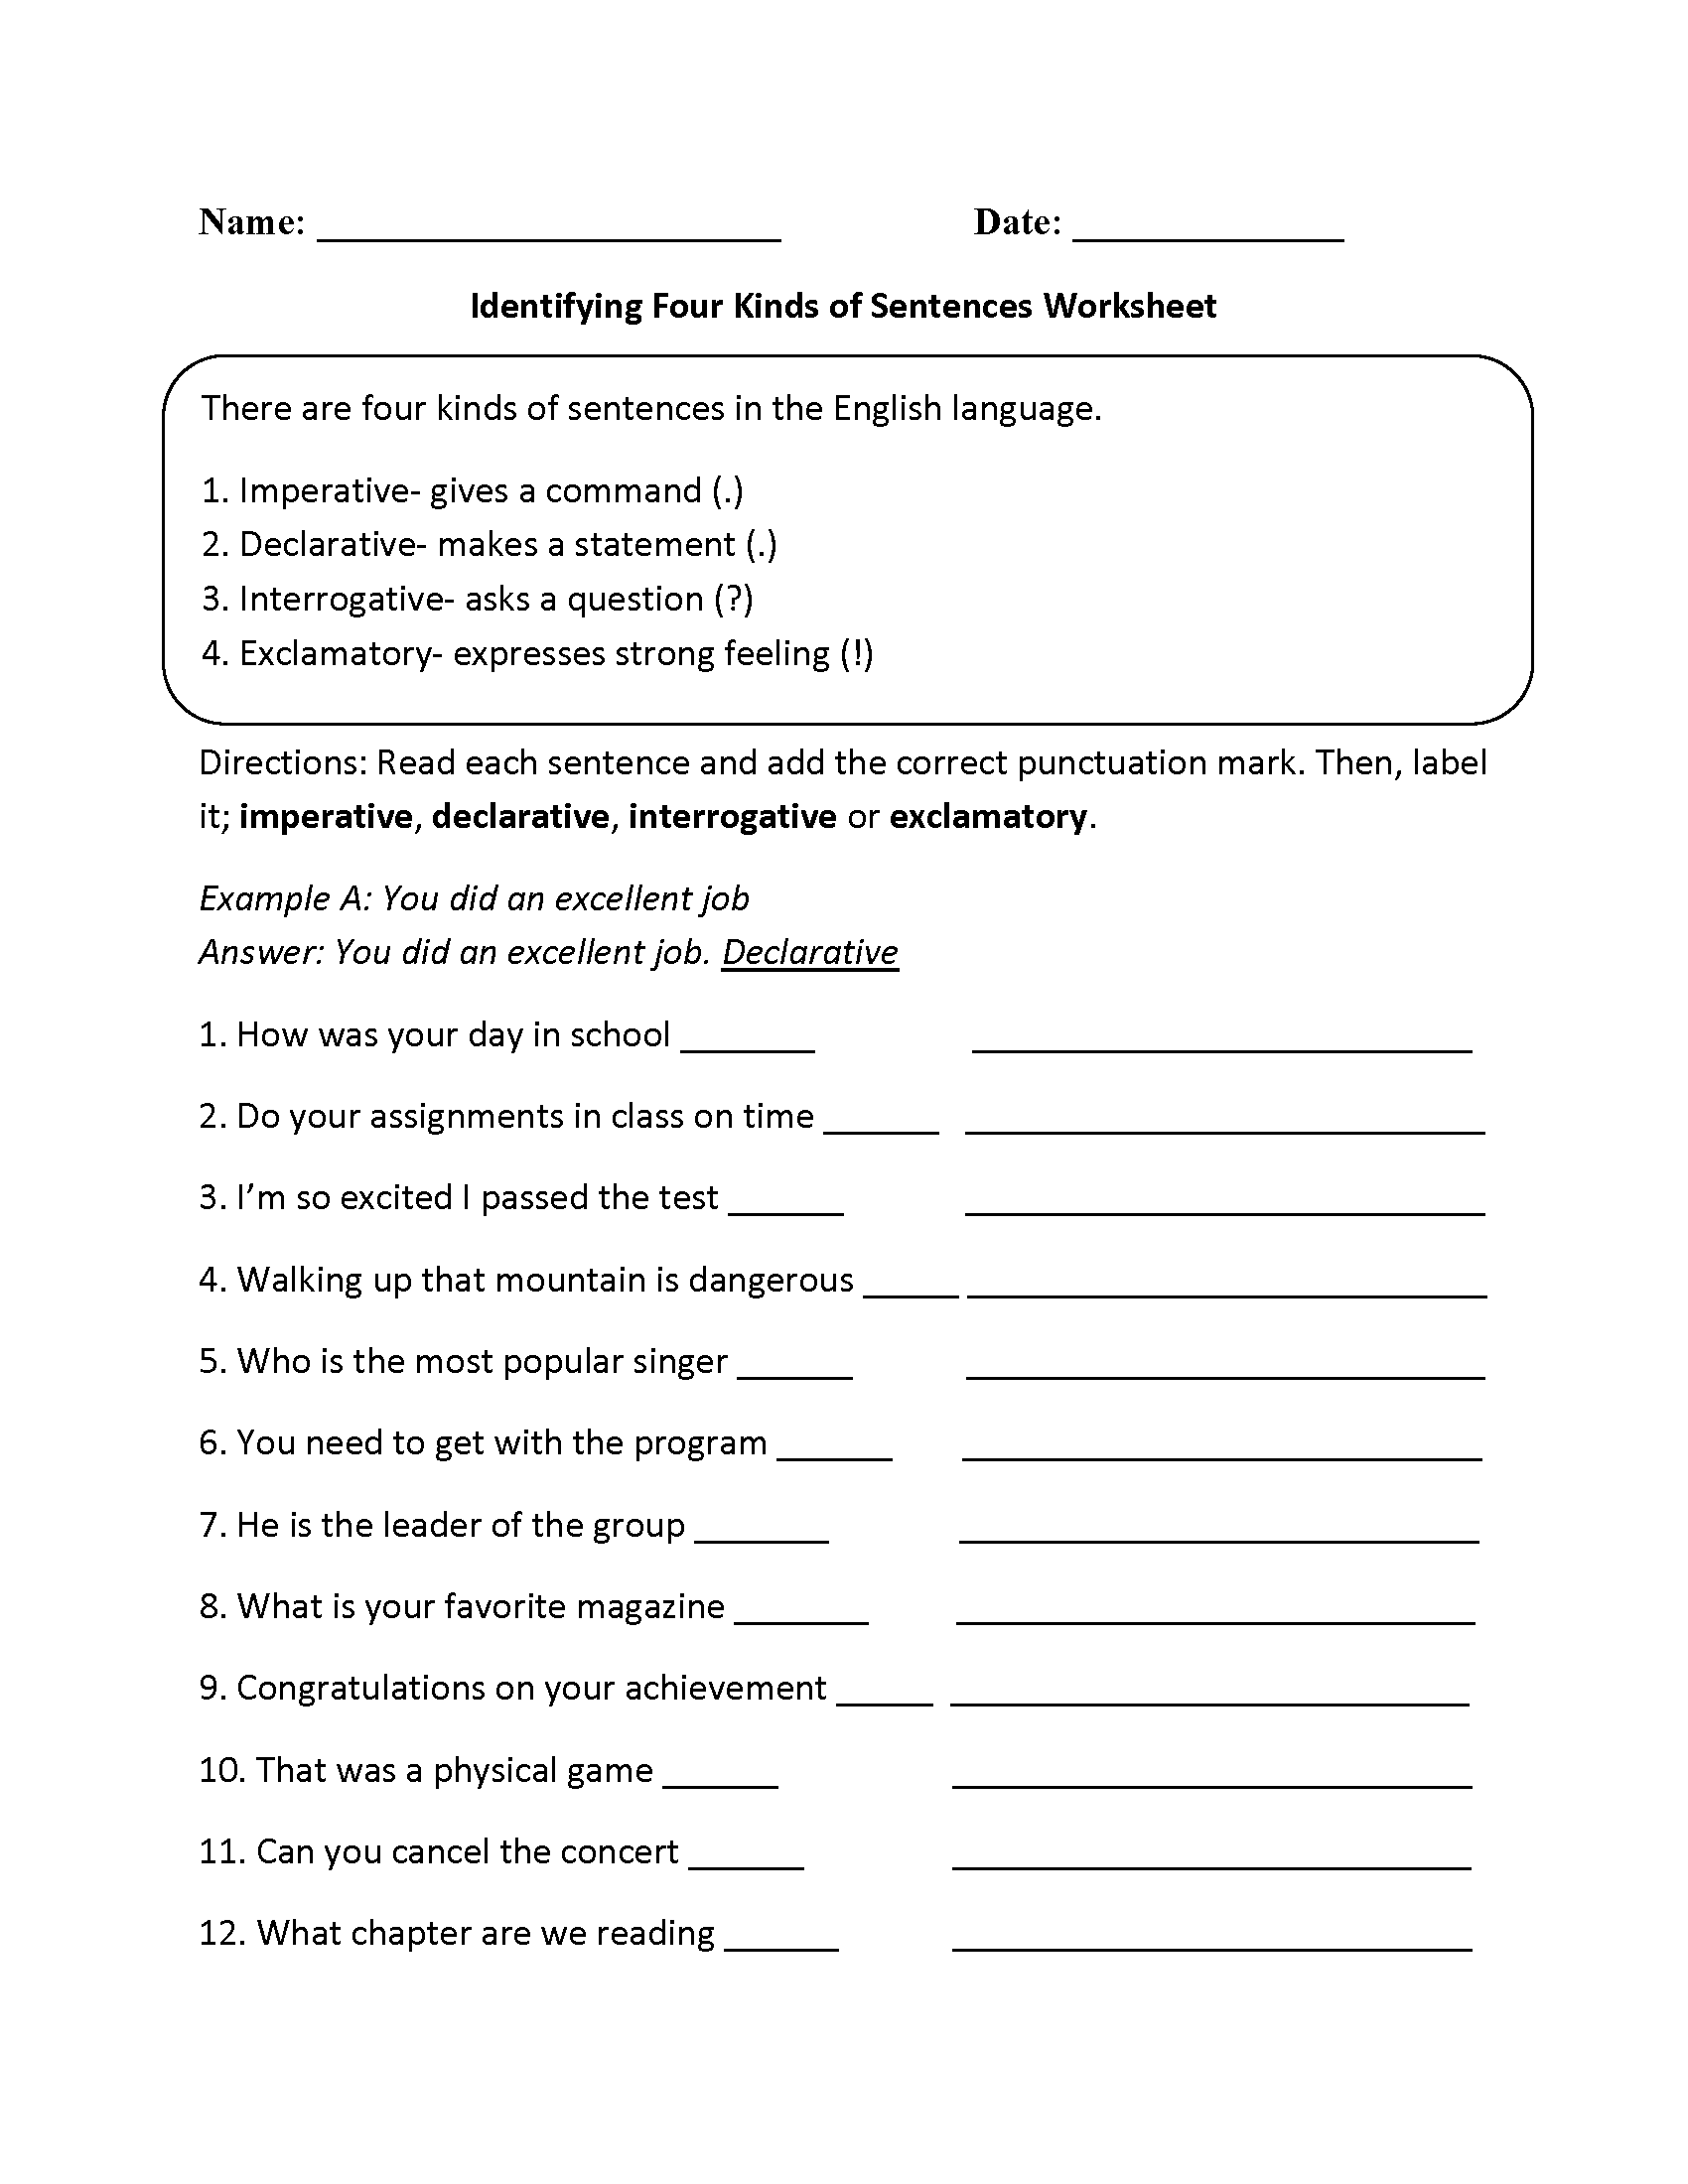 Worksheets Punctuation Practice Worksheets practicing four kinds of sentences worksheet language arts worksheet